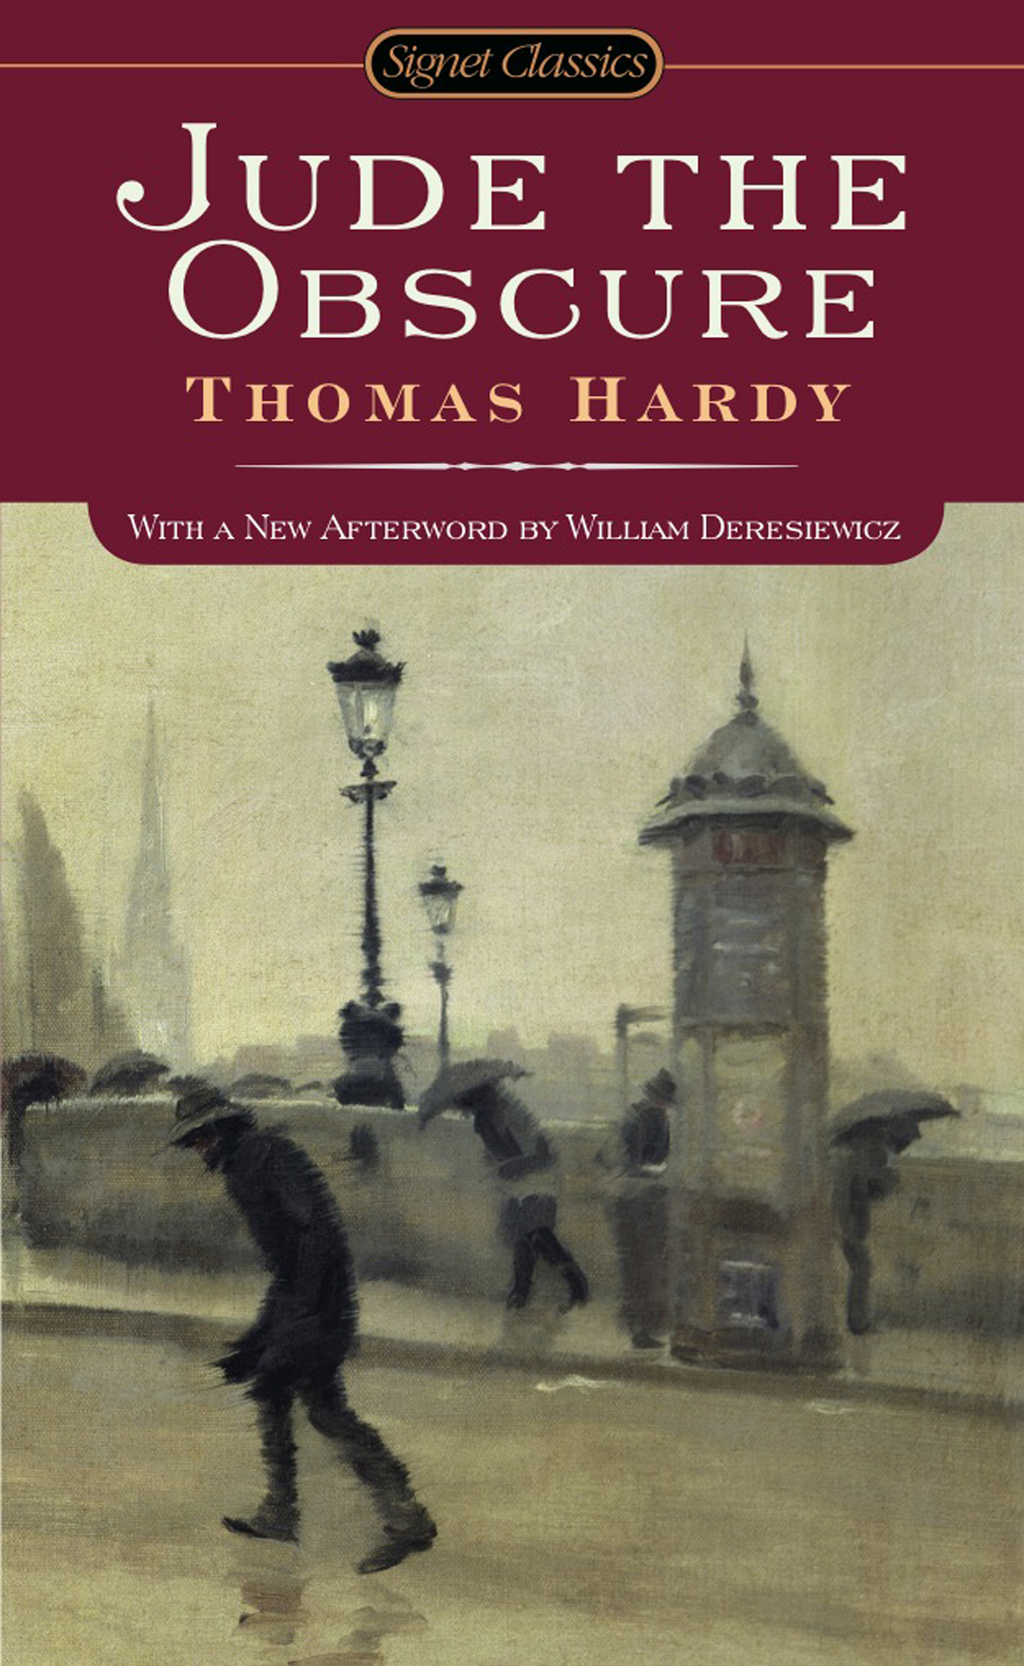 downfall of the main characters in thomas hardys jude the obscure Thomas hardy, jude the obscurevirtual entertainment, 2015series: world classic booksthis book's hero jude fawley is a lower-class young man this book's hero jude fawley is a lower-class young man who dreams of becoming a scholar the two other main characters are his earthy wife, arabella.